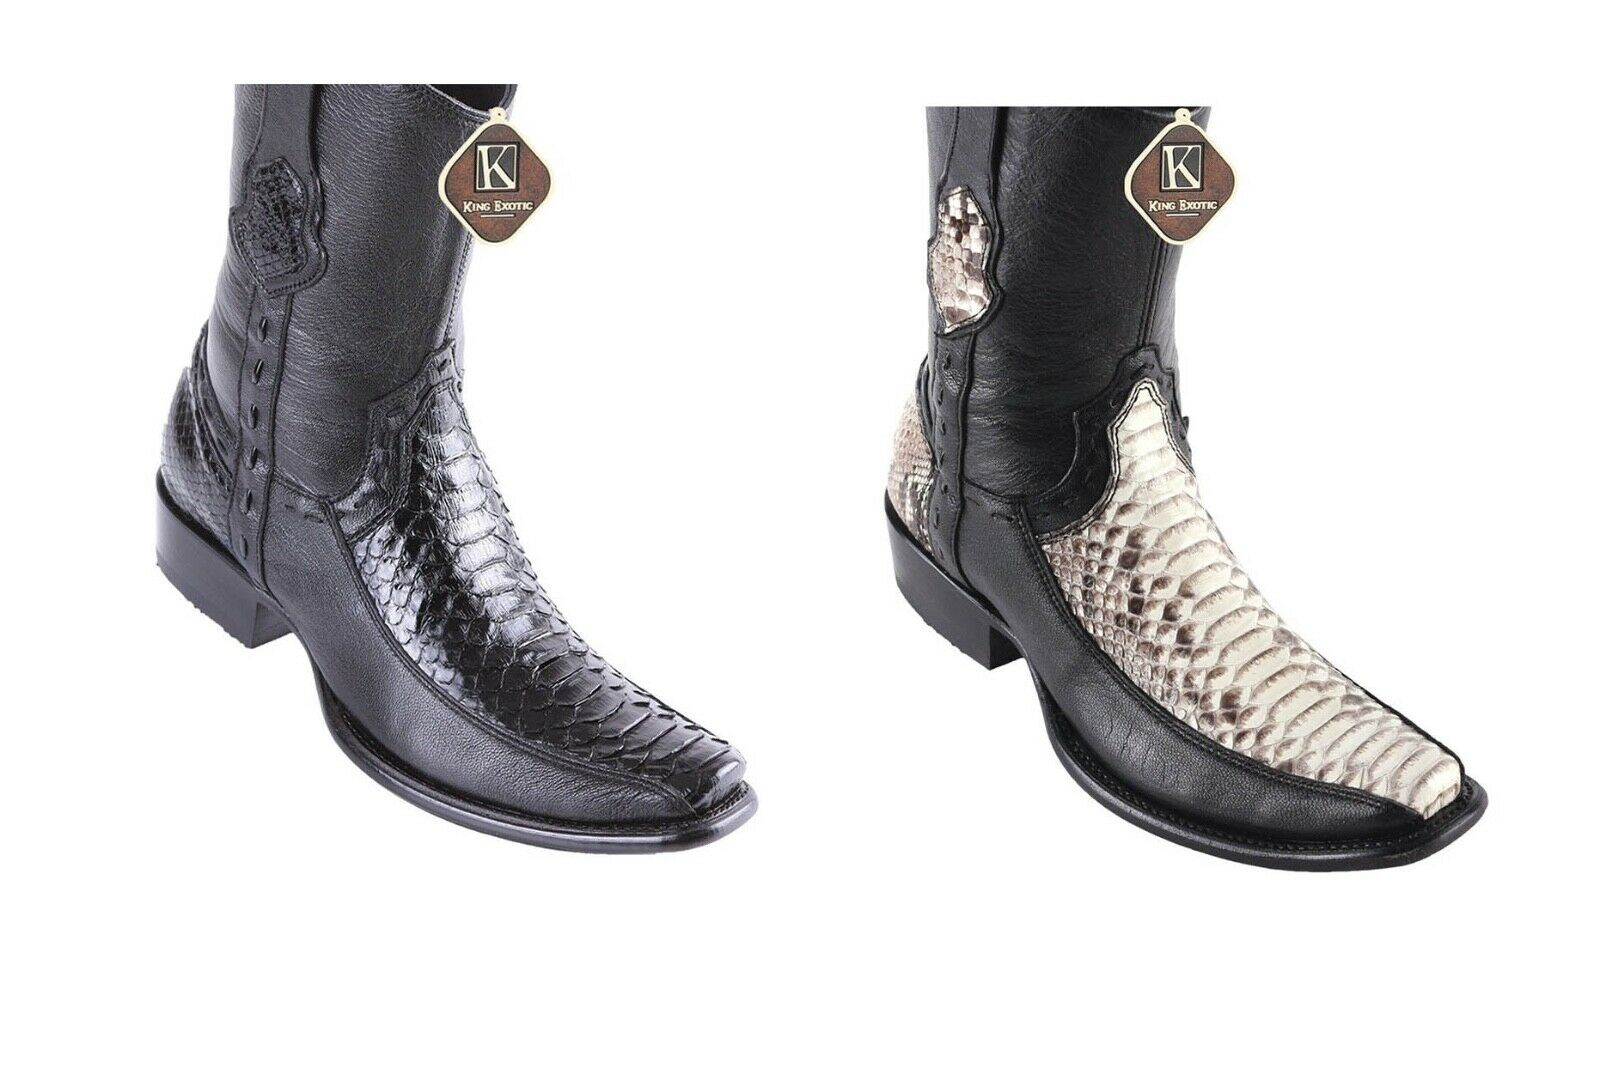 Men's King Exotic Python Boots With Deer Dubai Toe Handcrafted